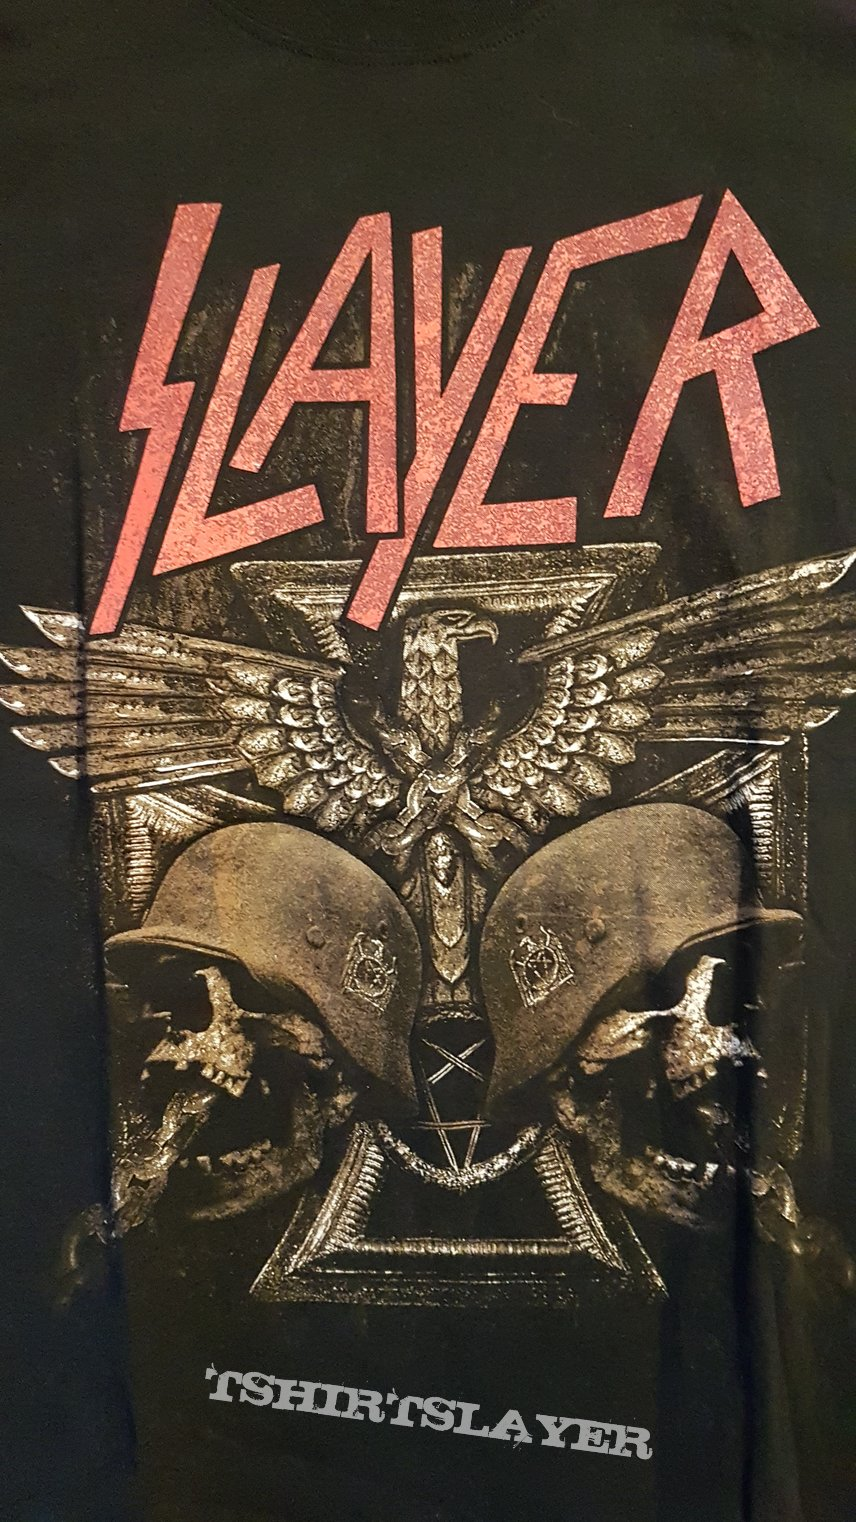 Slayer soldiers Helm Tourshirt'16 TS